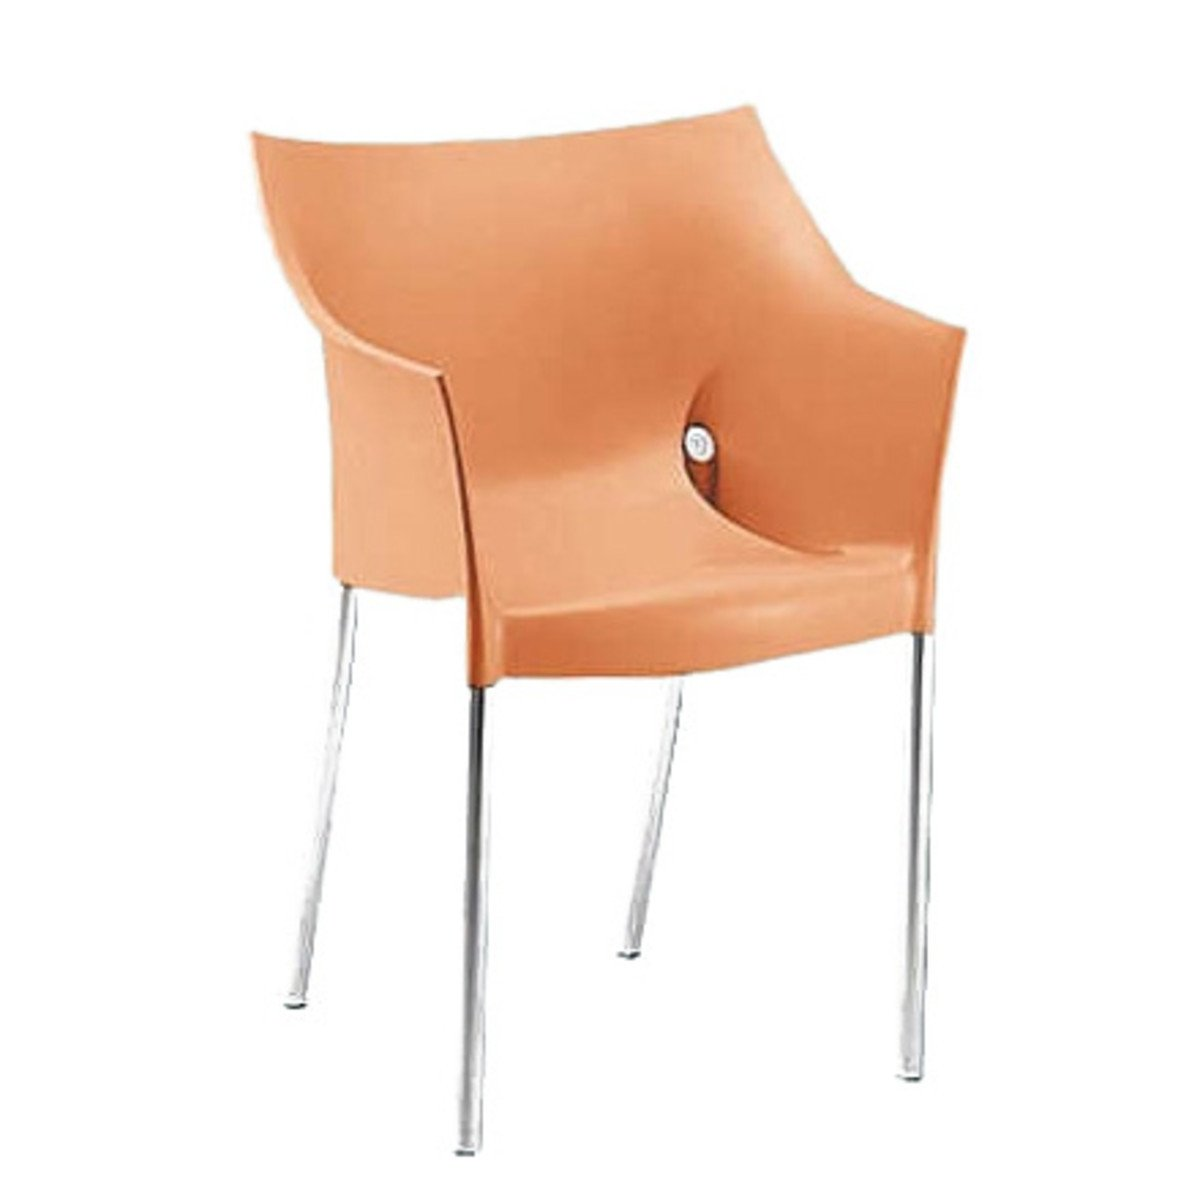 Dr. No Chair -- Kartell (1996)  Starck recast the club chair with this playful design, a wrap-around of colorful, injection-molded plastic.  Iconic Philippe Starck Designs  by Patrick Sisson